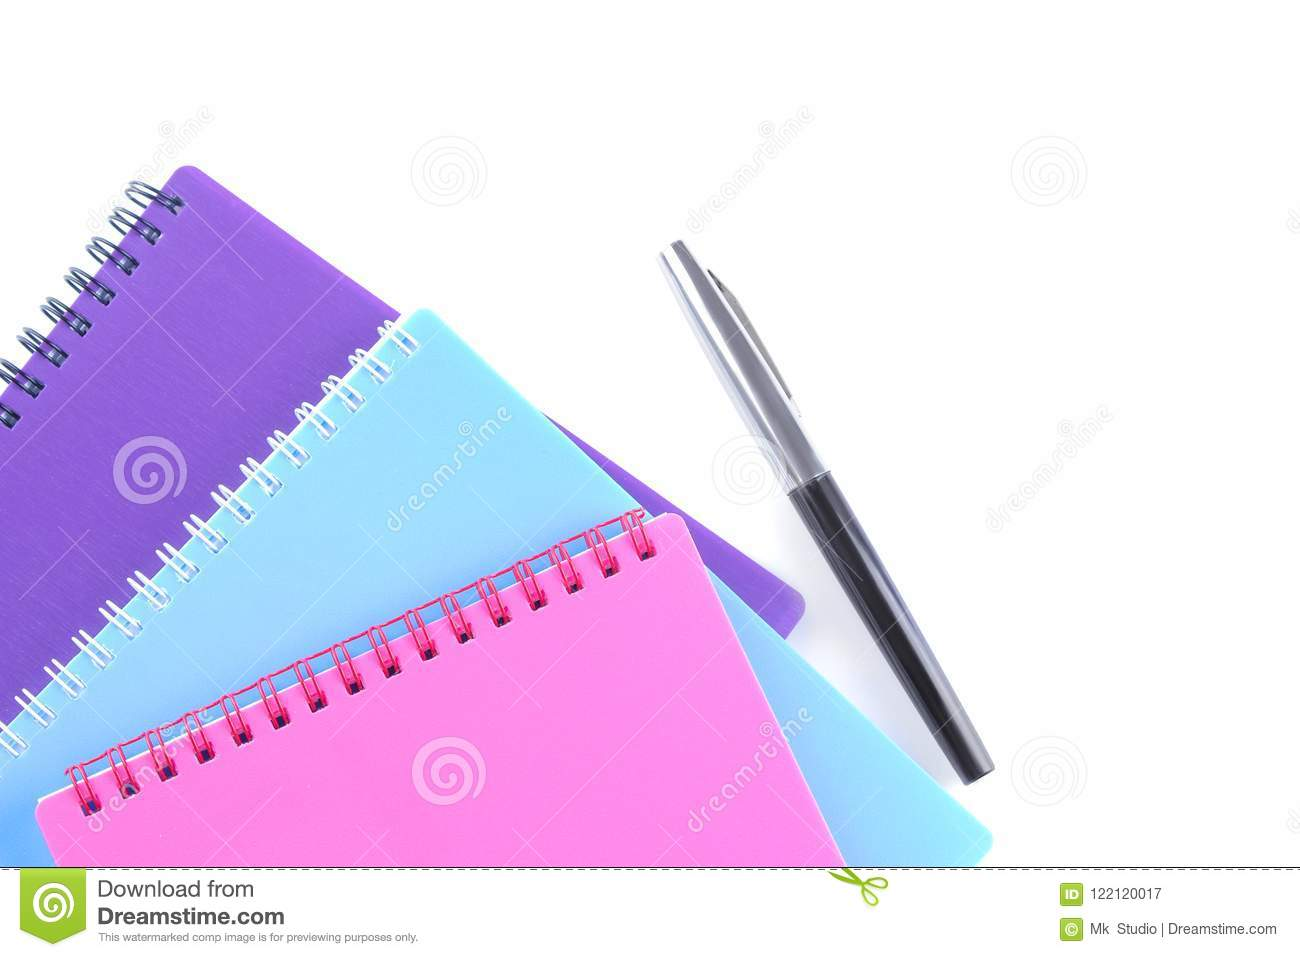 exercise book and pen on white isolated background. View from above. School supplies